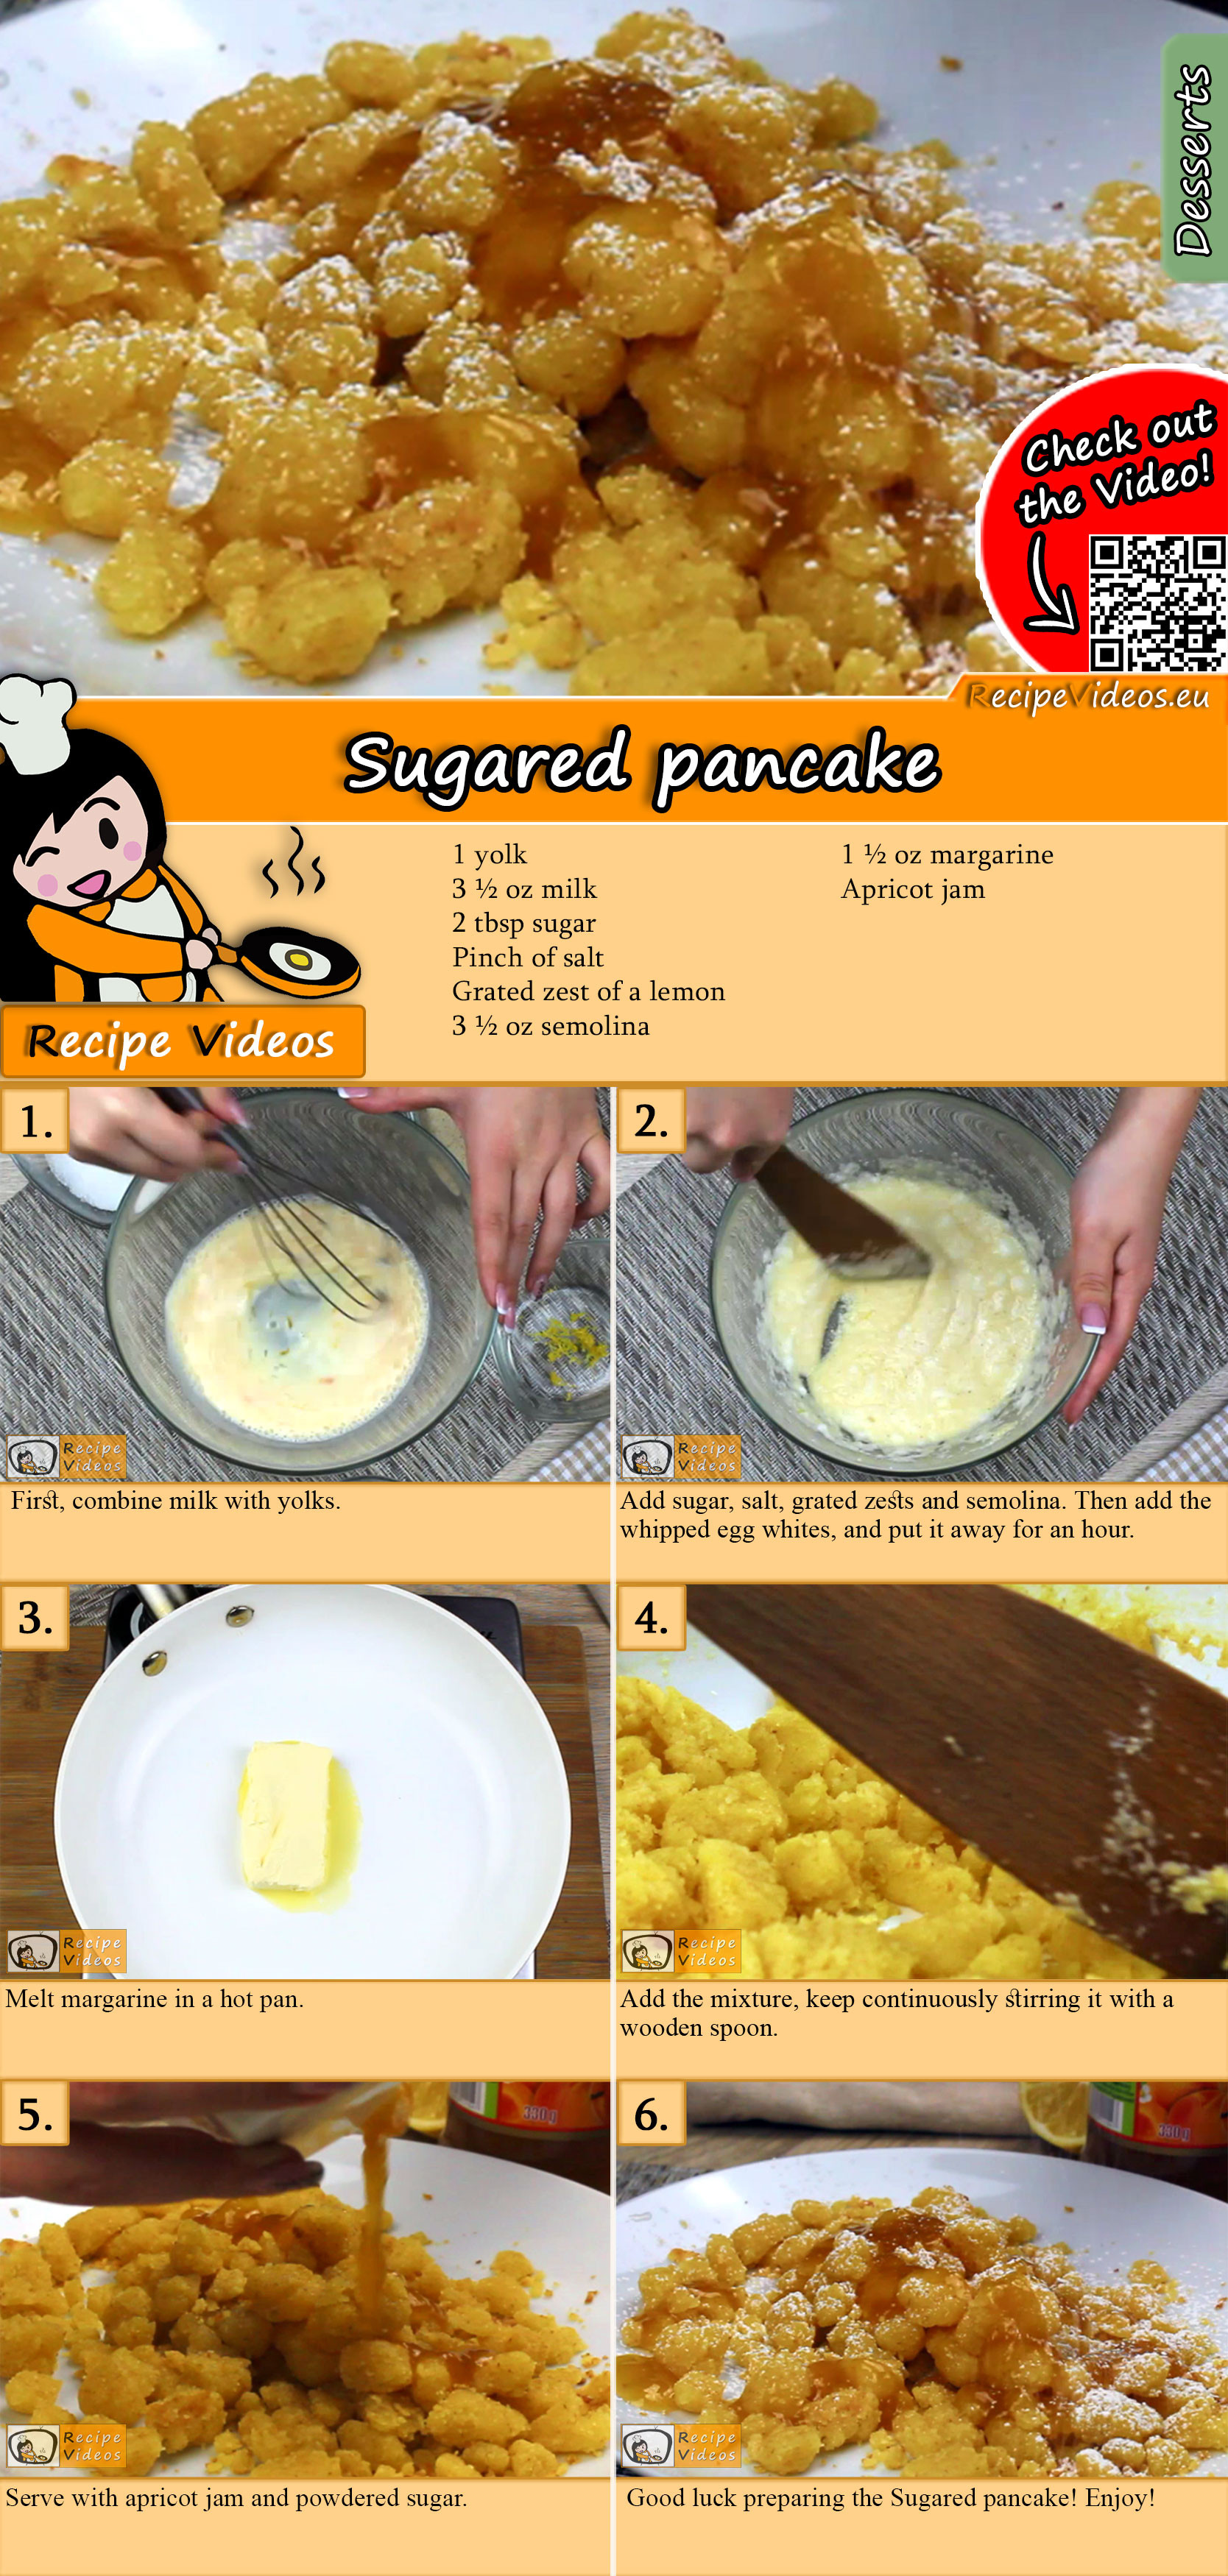 Sugared pancake recipe with video